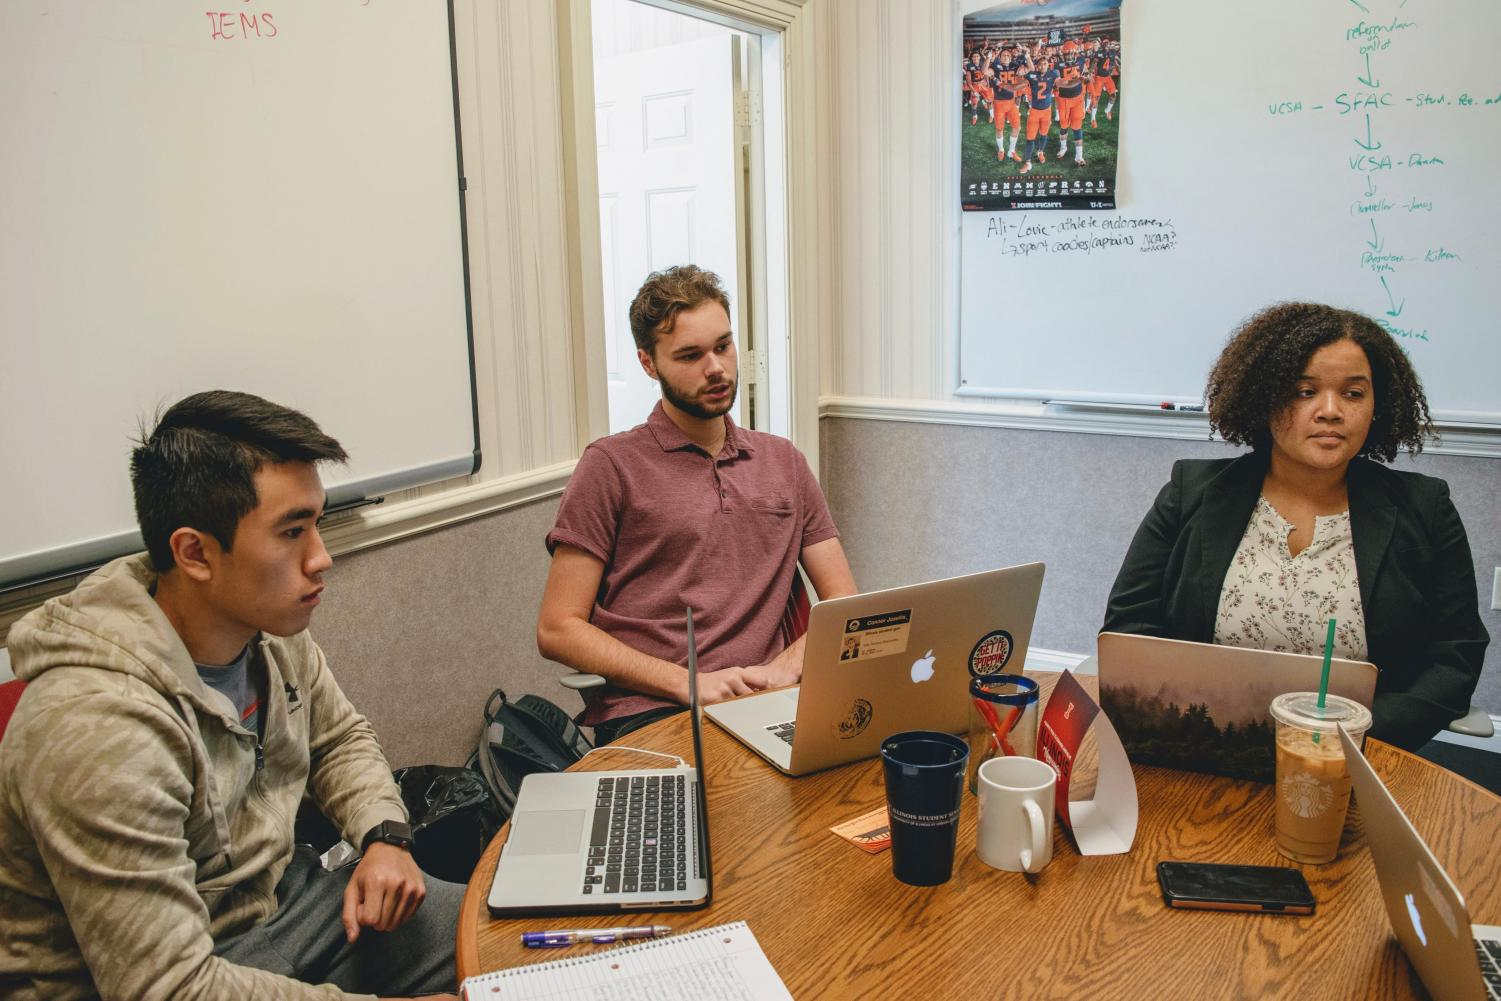 Illinois Student Government members (left to right) Jimmy Song, Conner Josellis and Mariama Mwilambwe sit together for an interview.